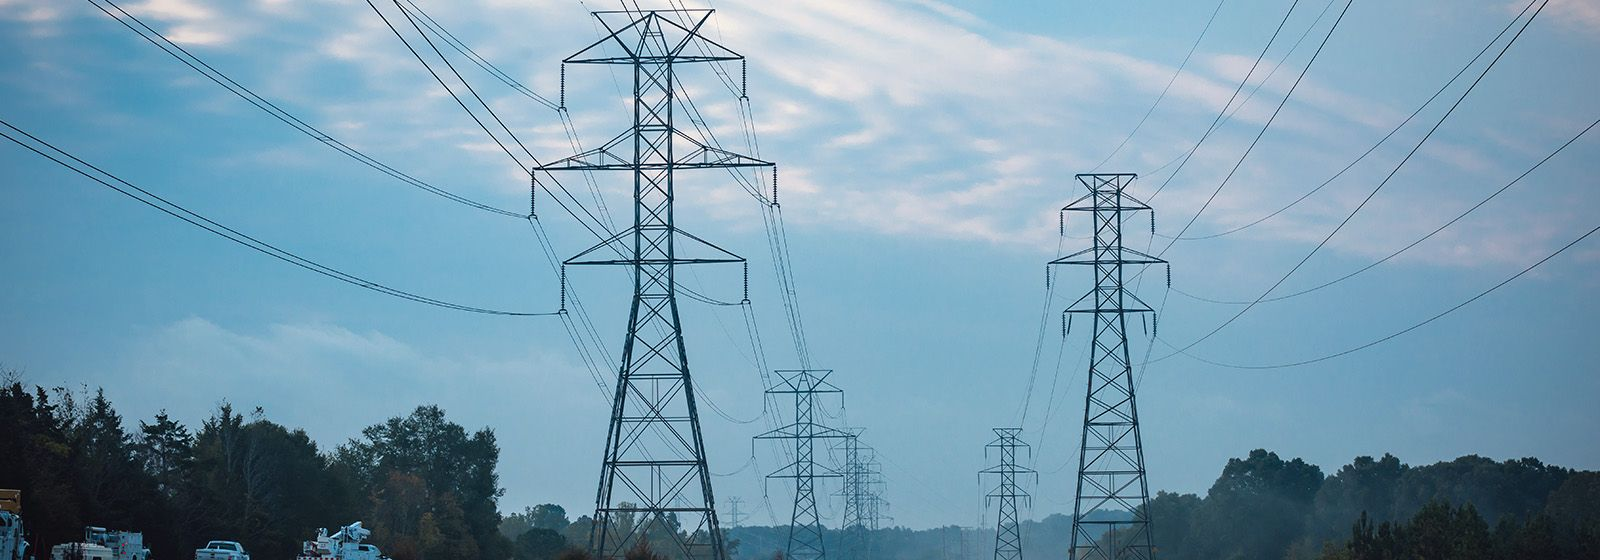 Why is the power grid alternating current?